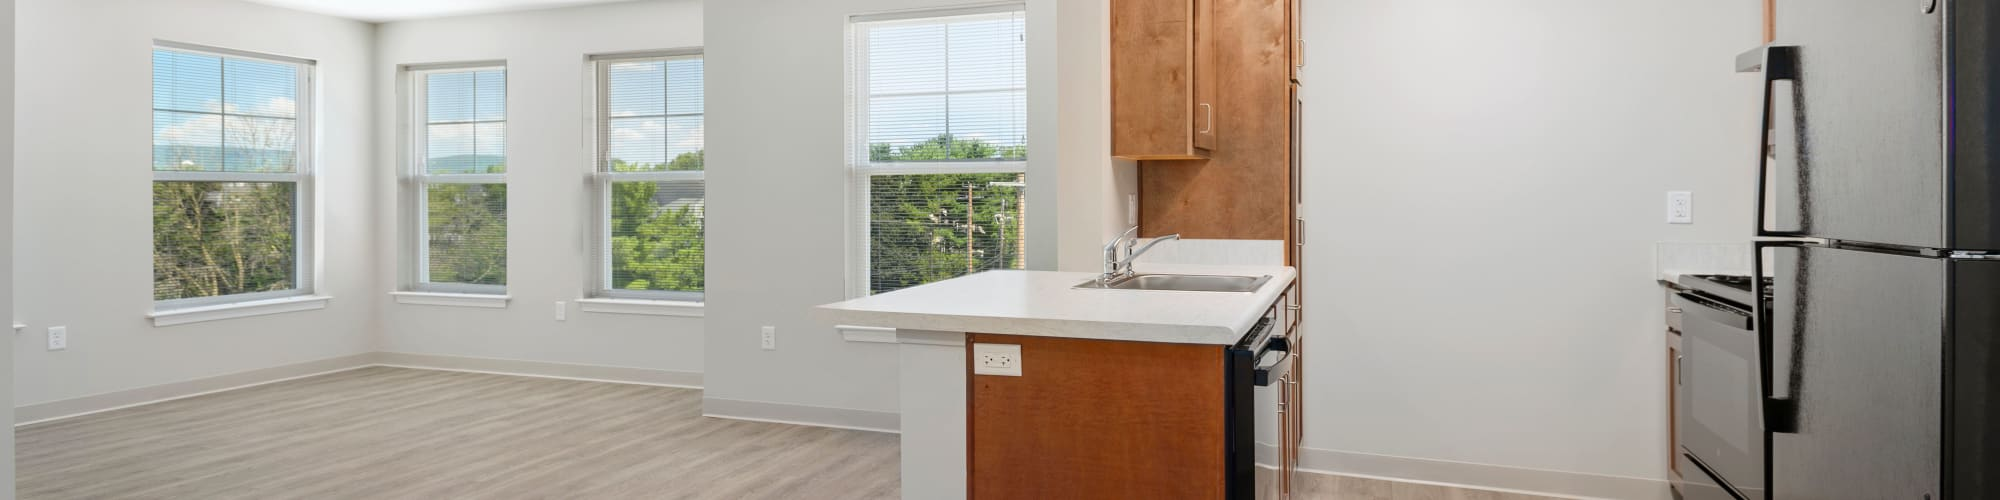 Schedule a tour of The Apartments at Sharpe Square in Frederick, Maryland